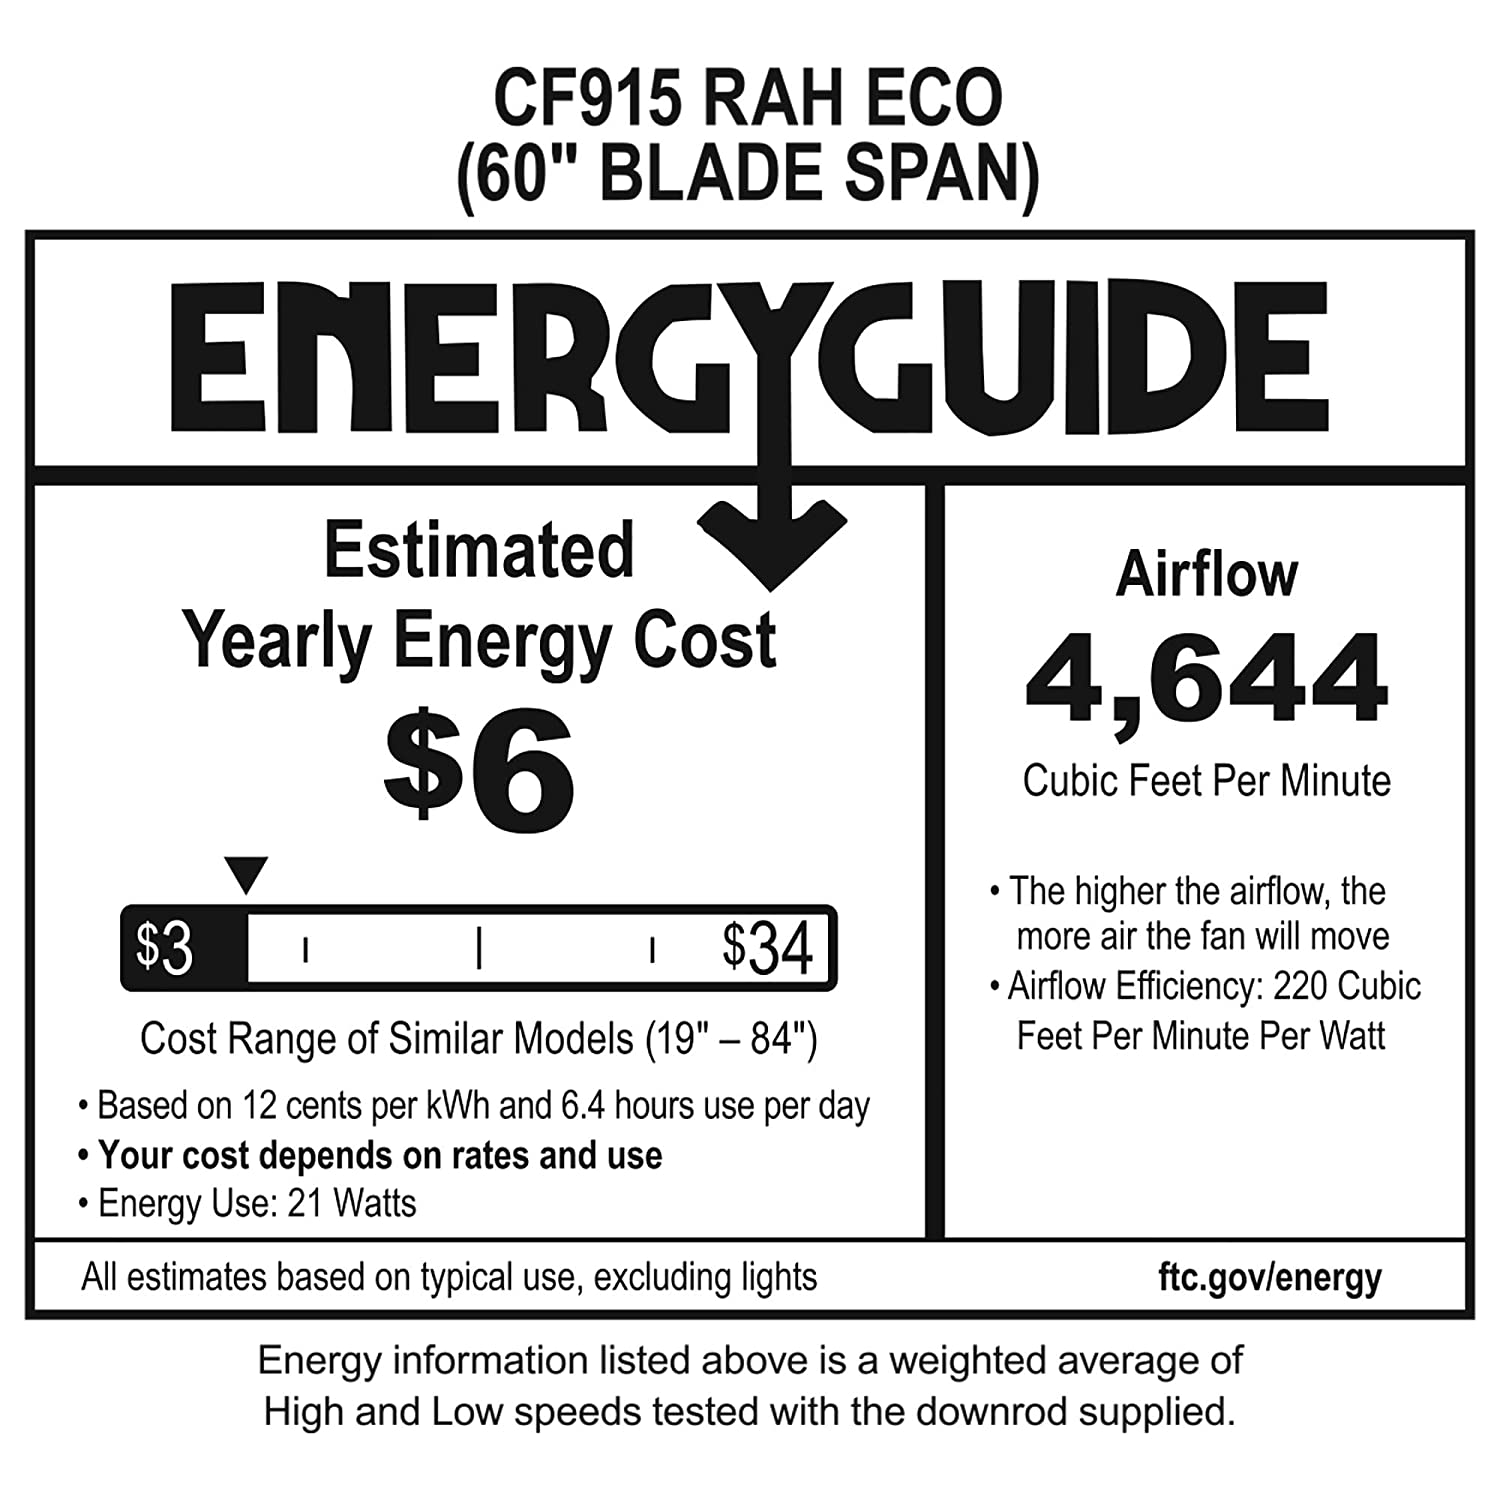 Emerson CF915W60ORB 60-inch Modern Rah Eco Ceiling Fan, 6-Blade Ceiling Fan with LED Lighting and 6-Speed Wall Control